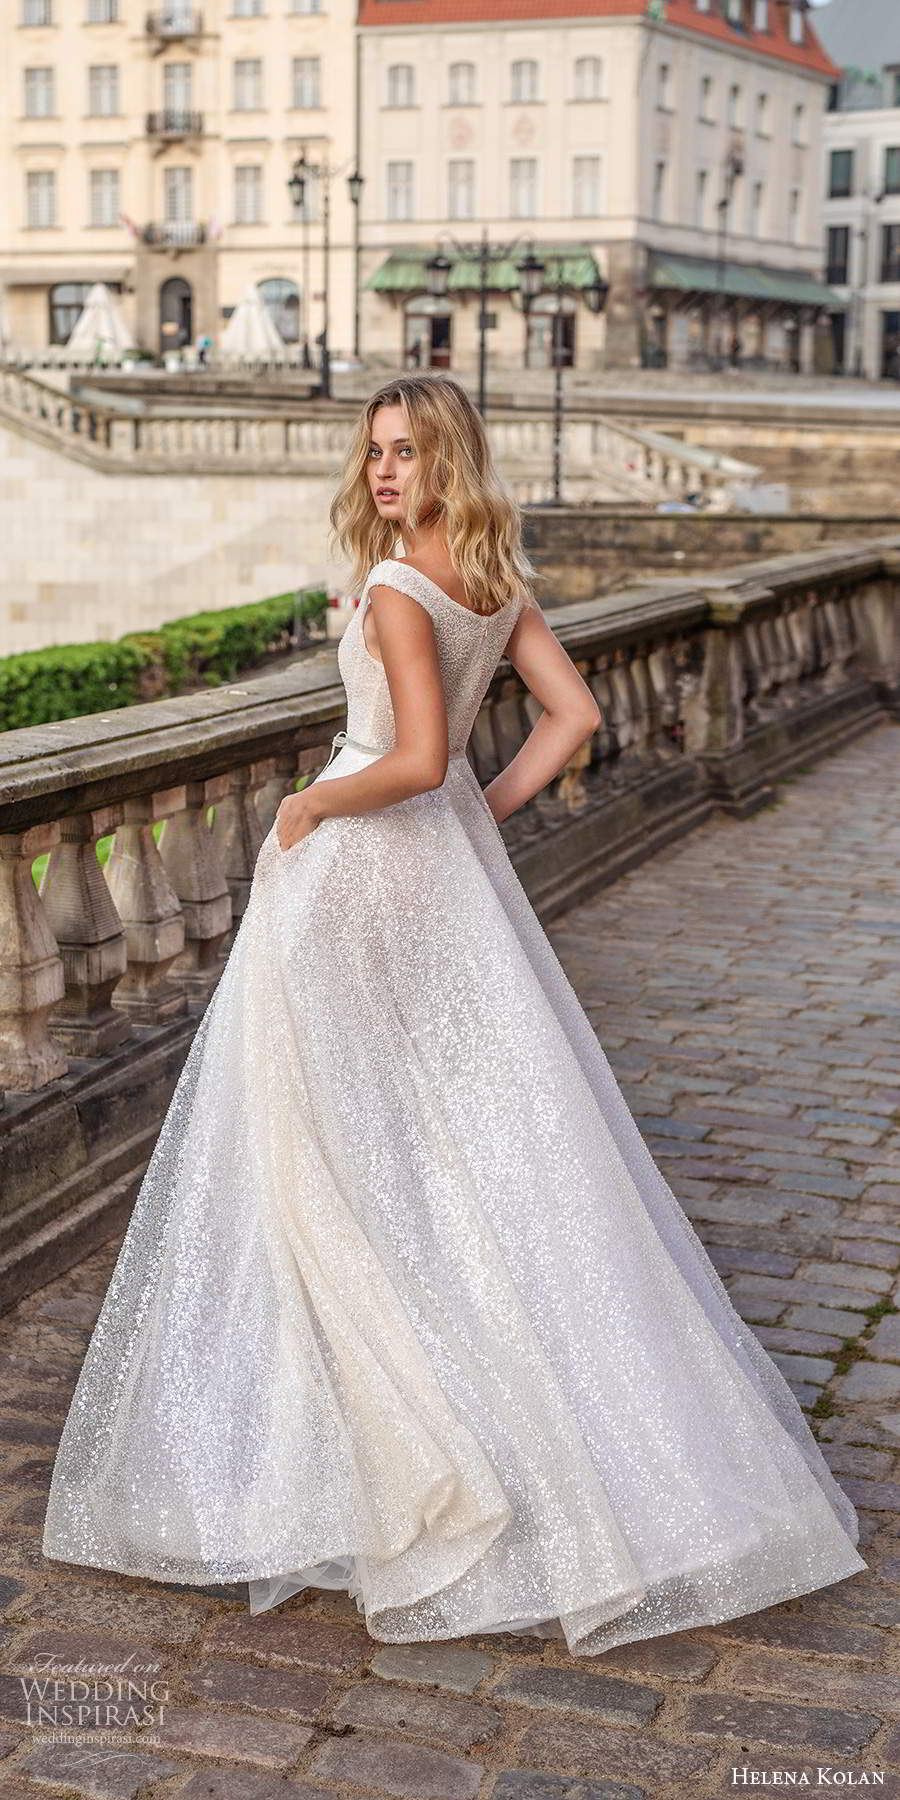 helena kolan 2020 bridal off shoulder cap sleeves scoop neckline fully embellished glitzy glam a line ball gown wedding dress pockets sweep train (13) bv